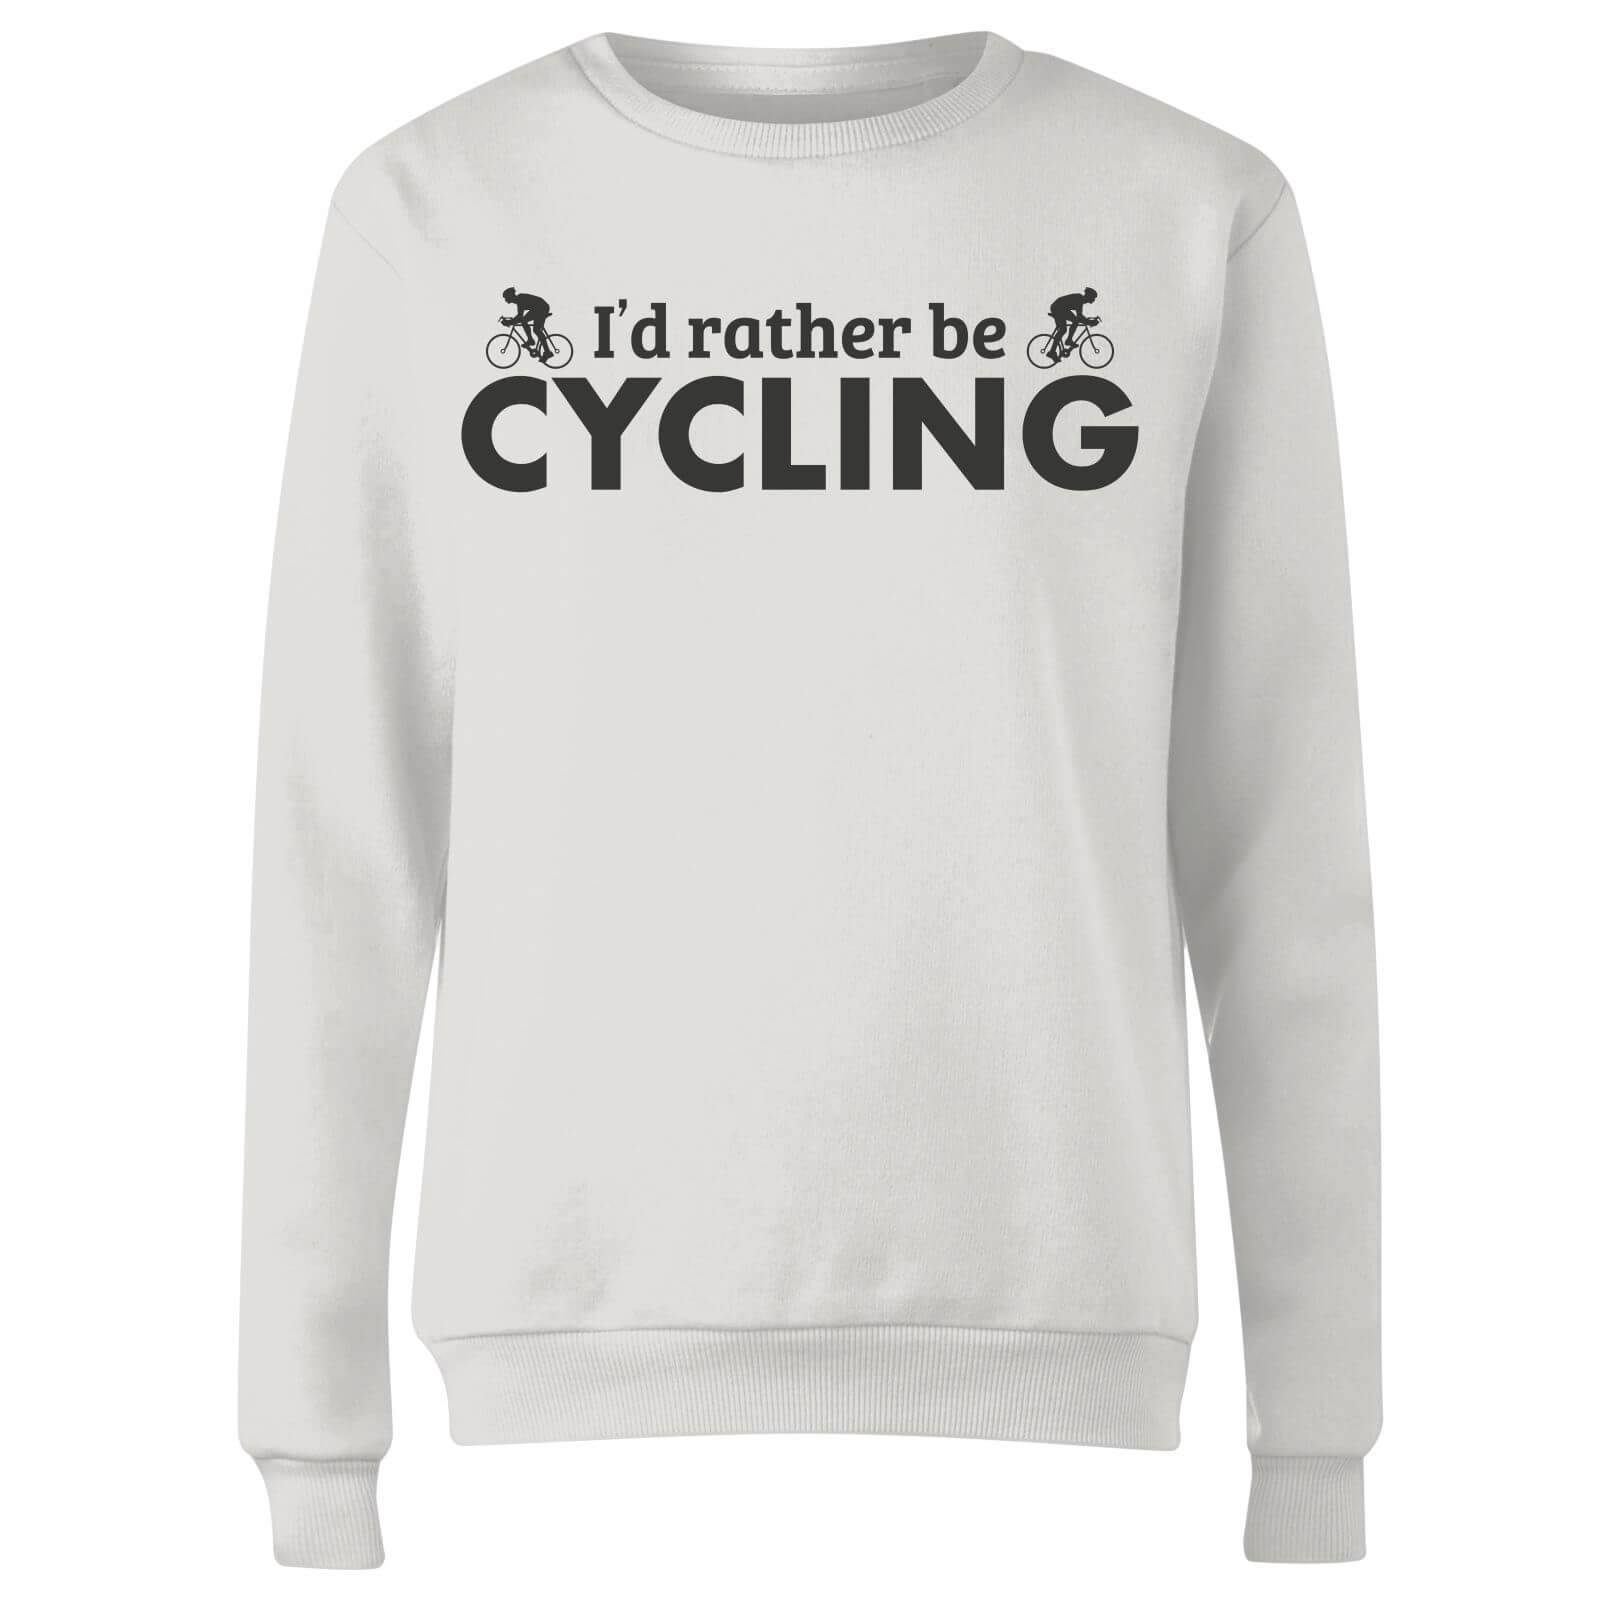 By IWOOT I'd Rather be Cycling Women's Sweatshirt - White - 3XL - White